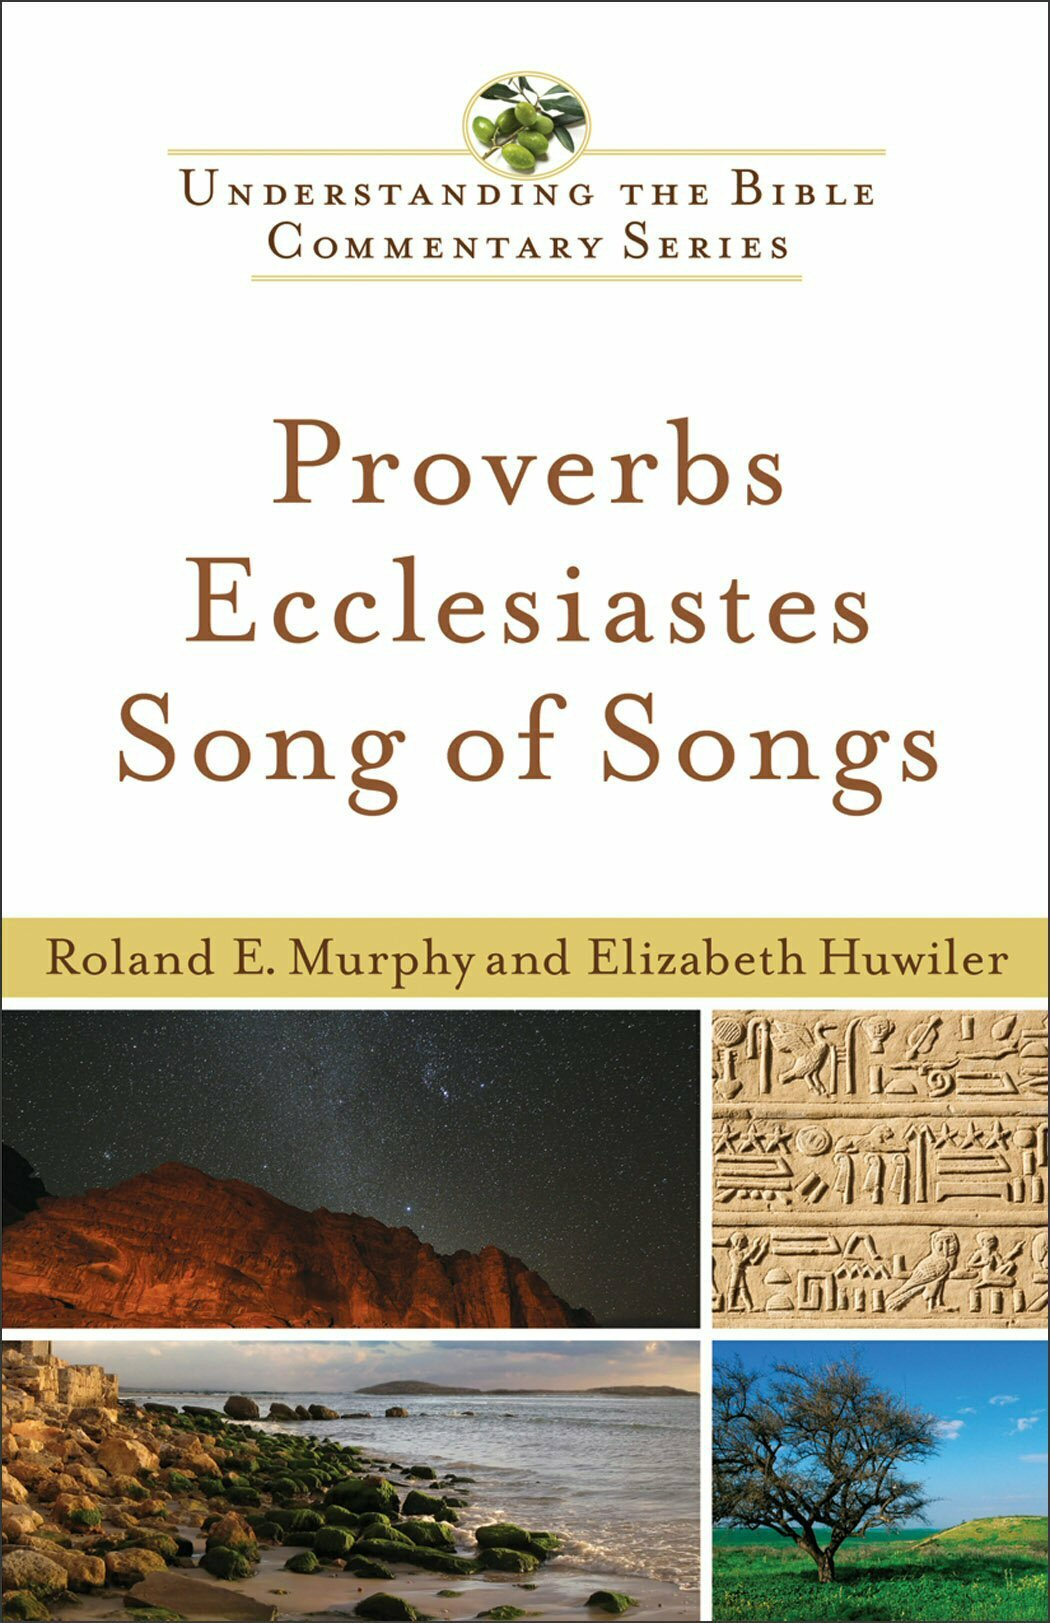 Understanding the Bible Commentary: Proverbs, Ecclesiastes, Song of Songs